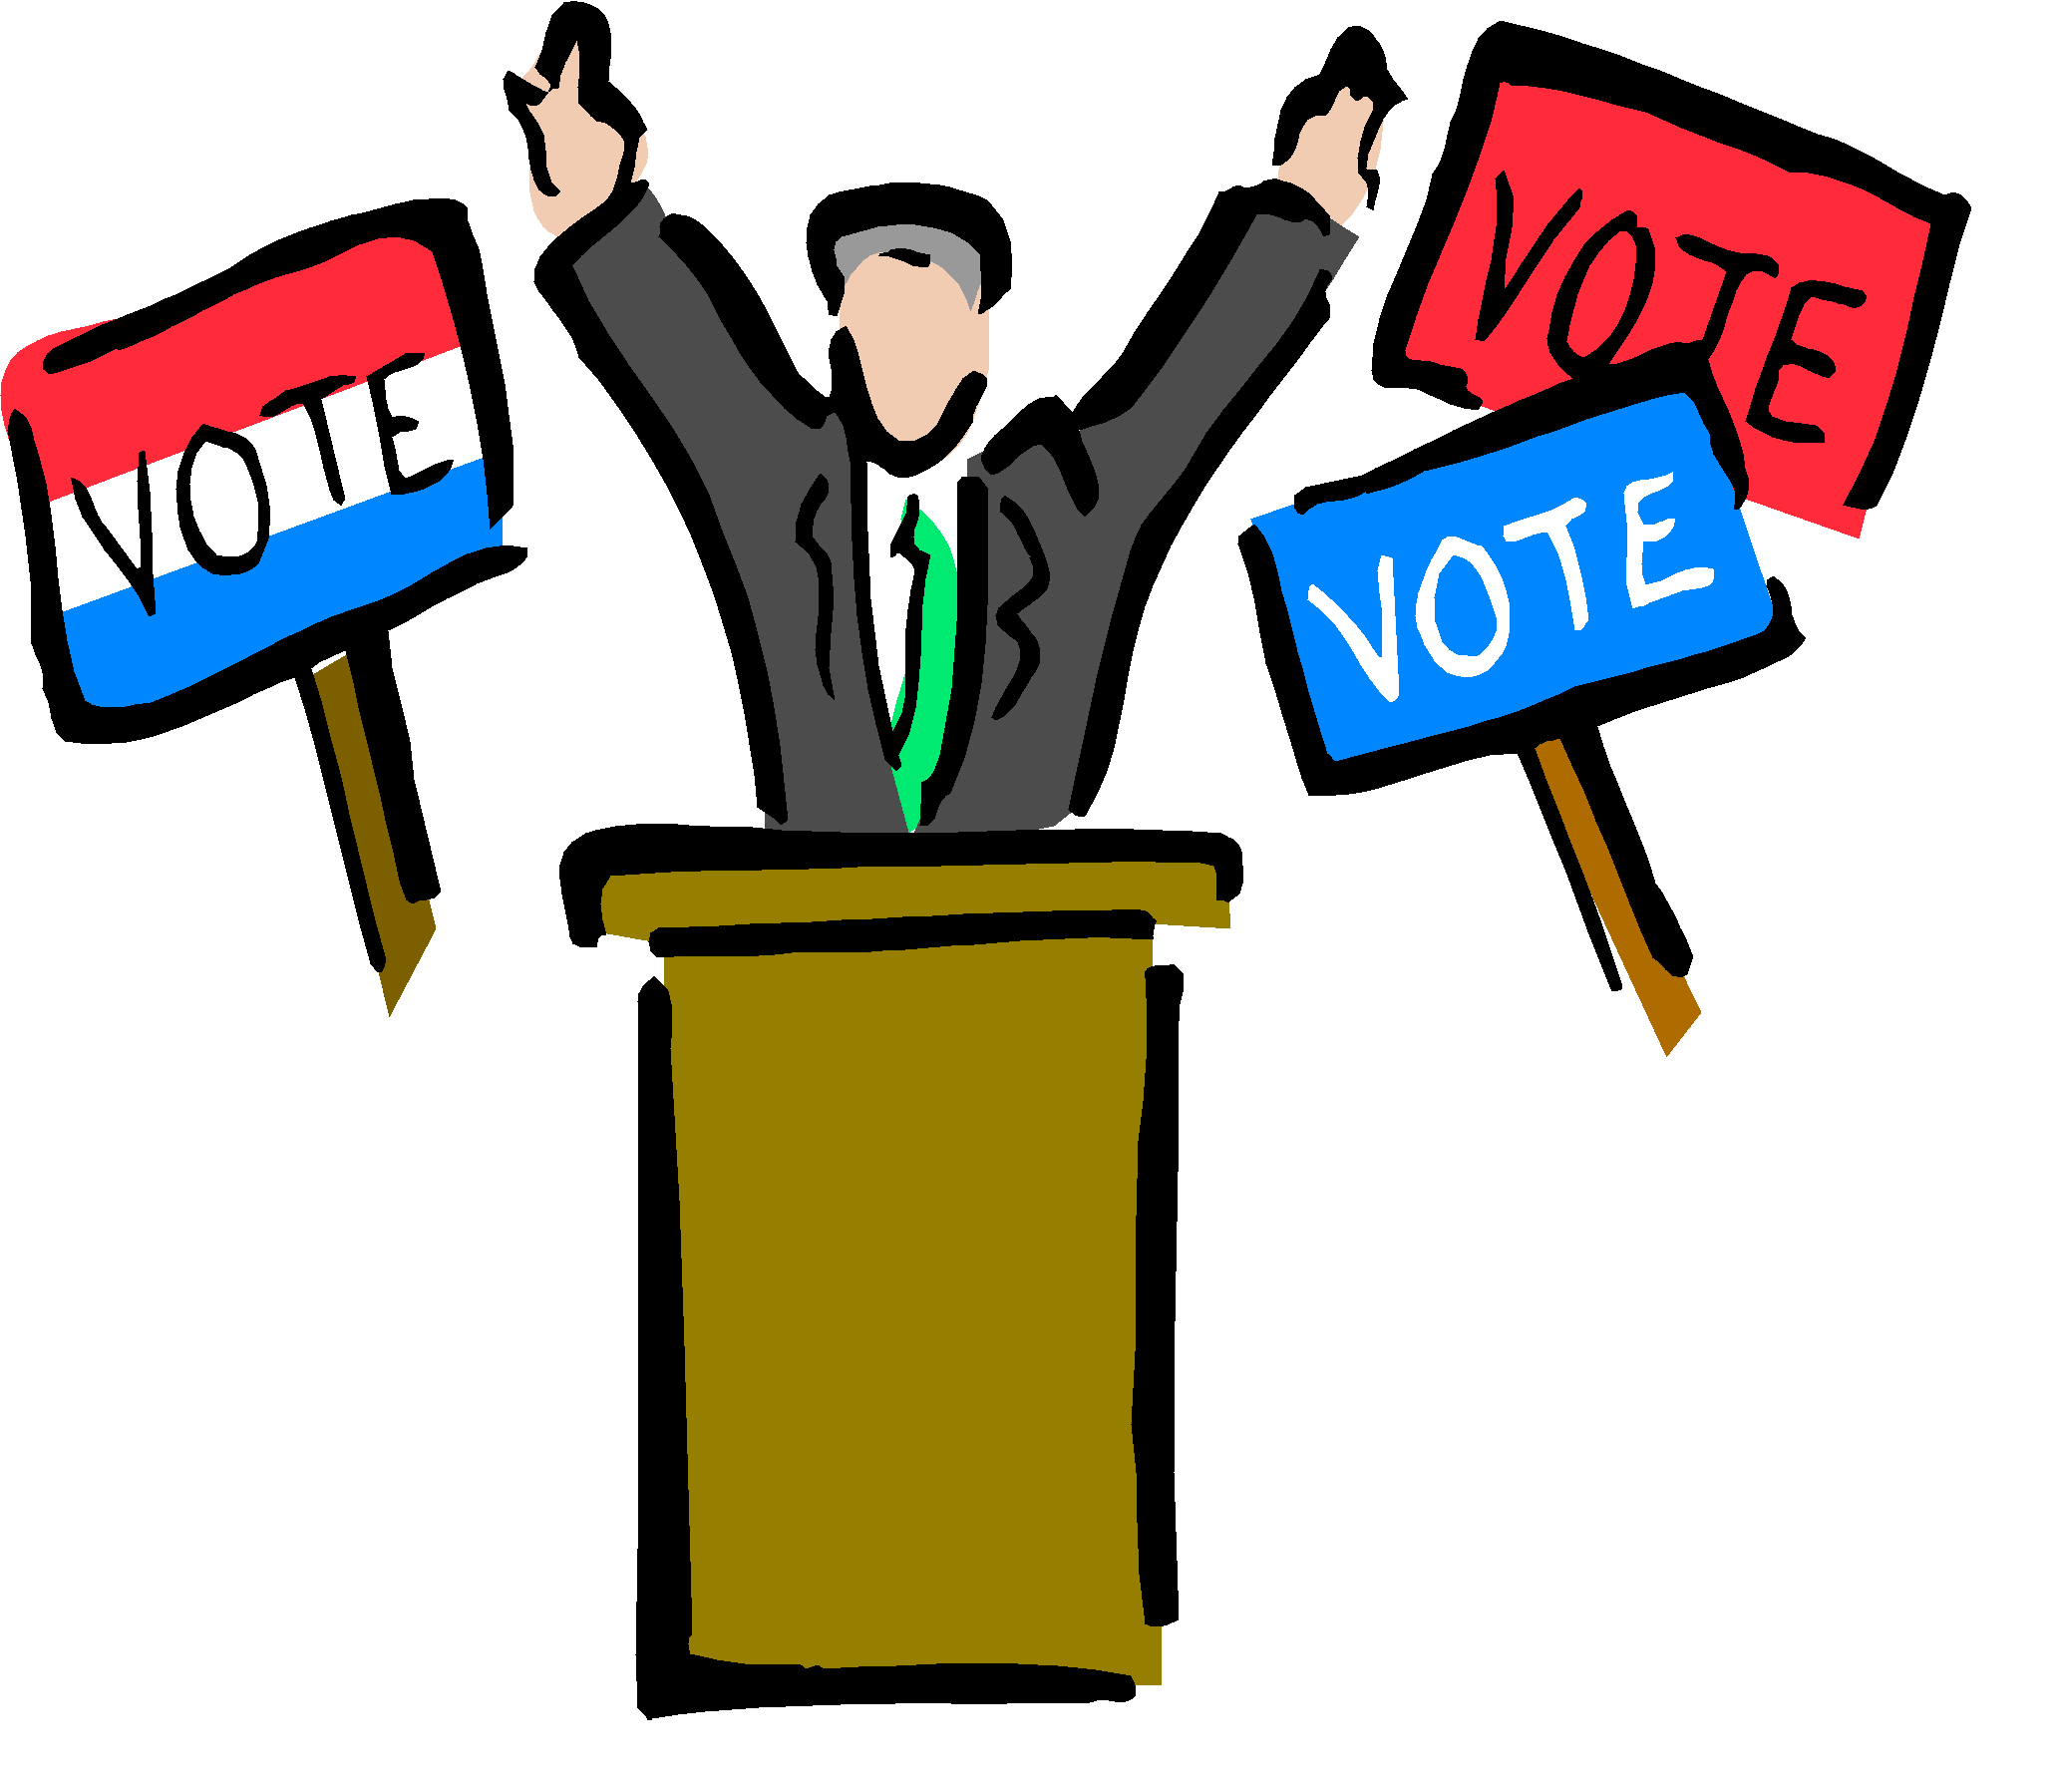 Voting clipart populism. Ce a and b